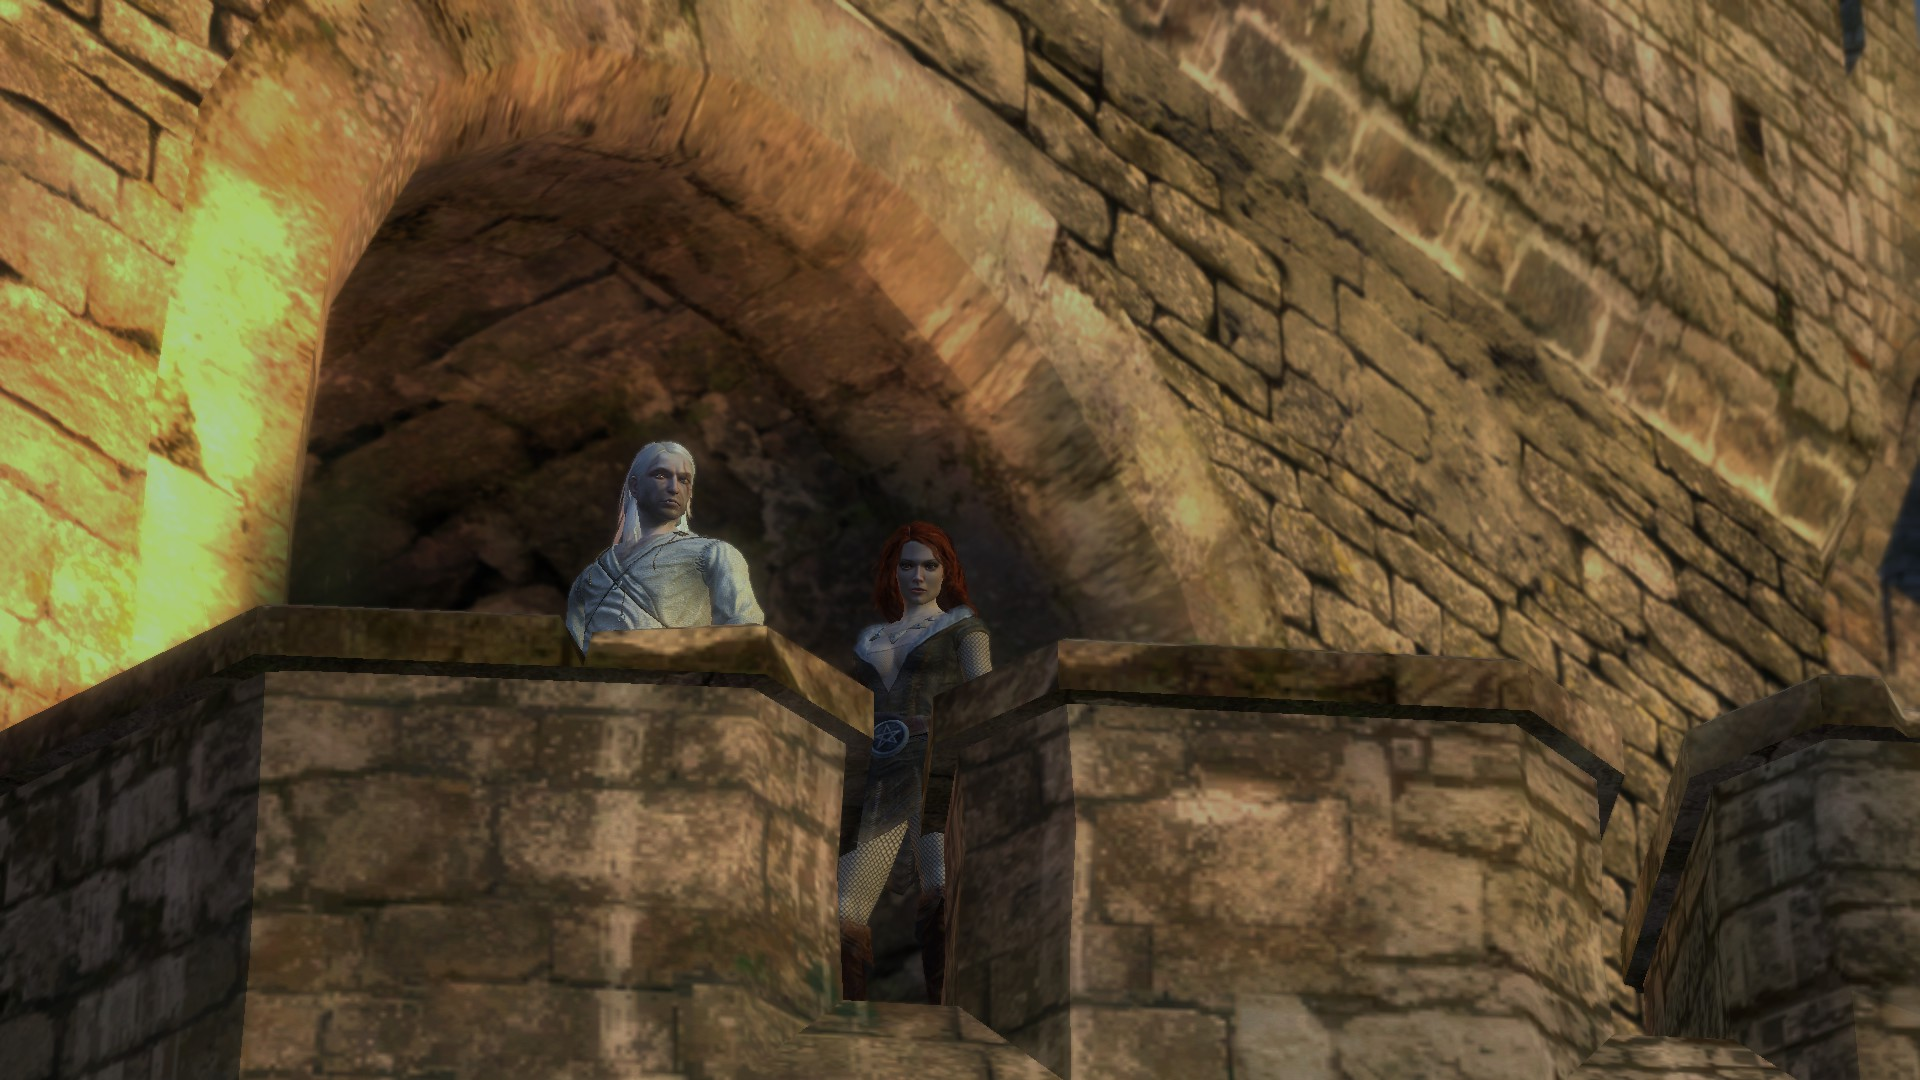 20171028181525_1.jpg - Witcher, the